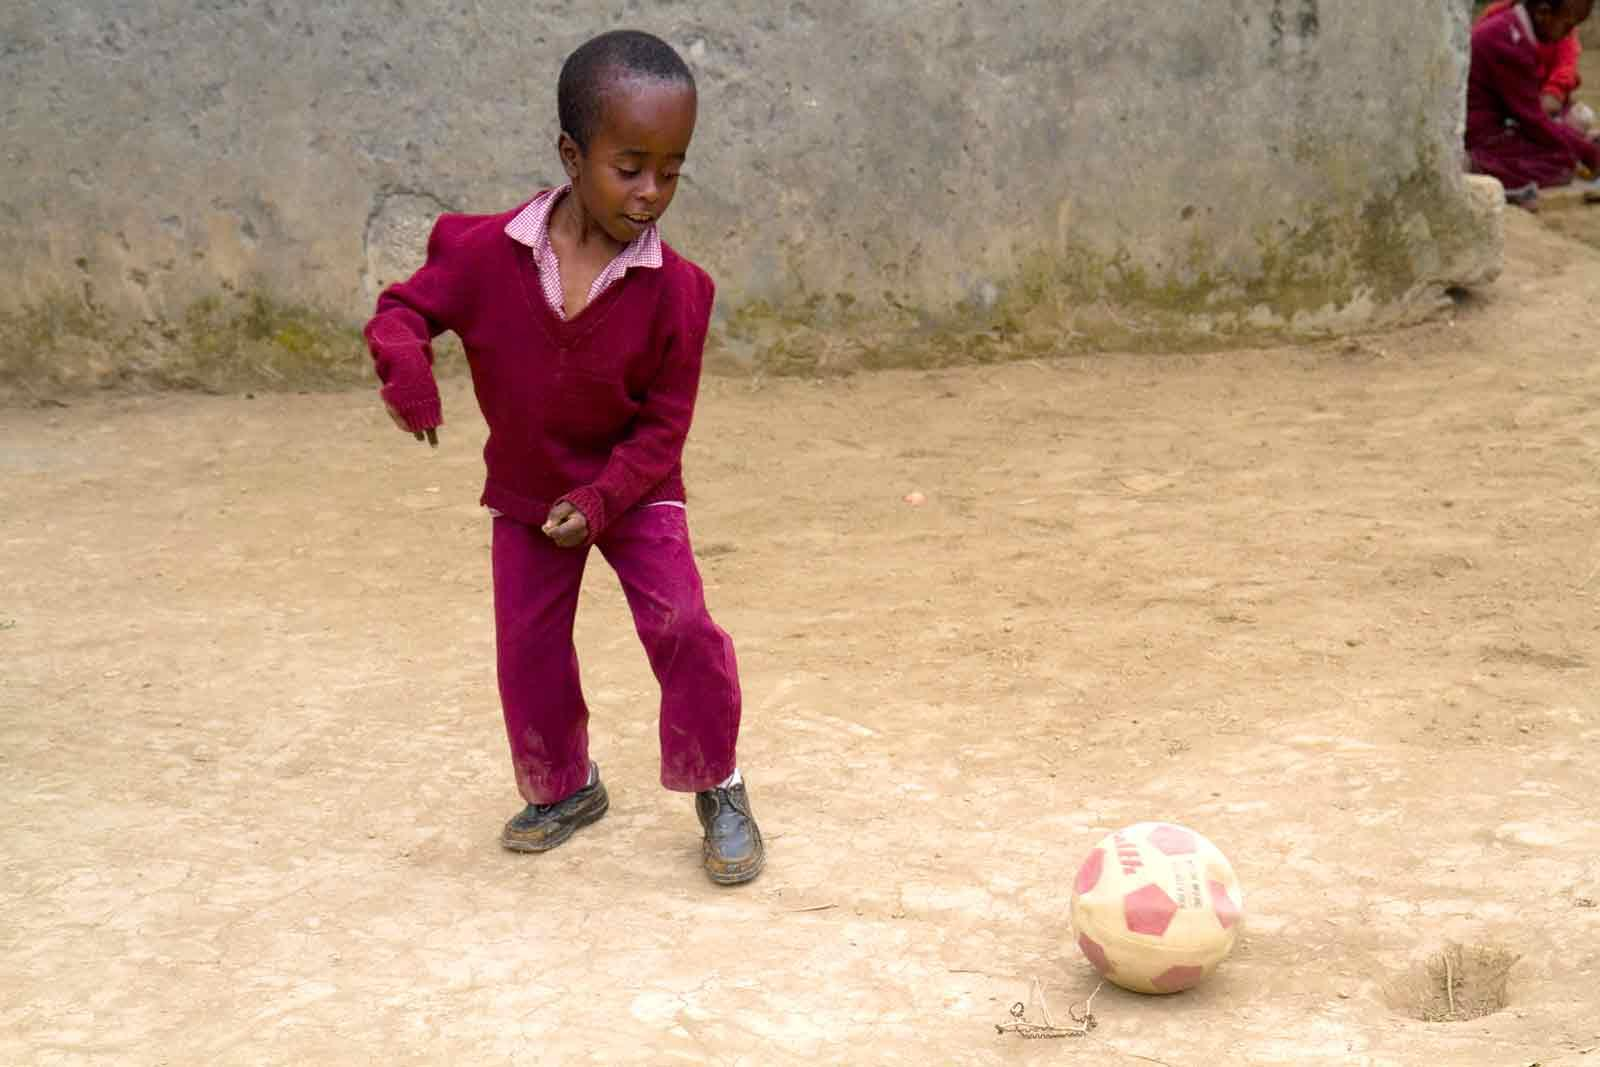 Boy with disabilities plays football